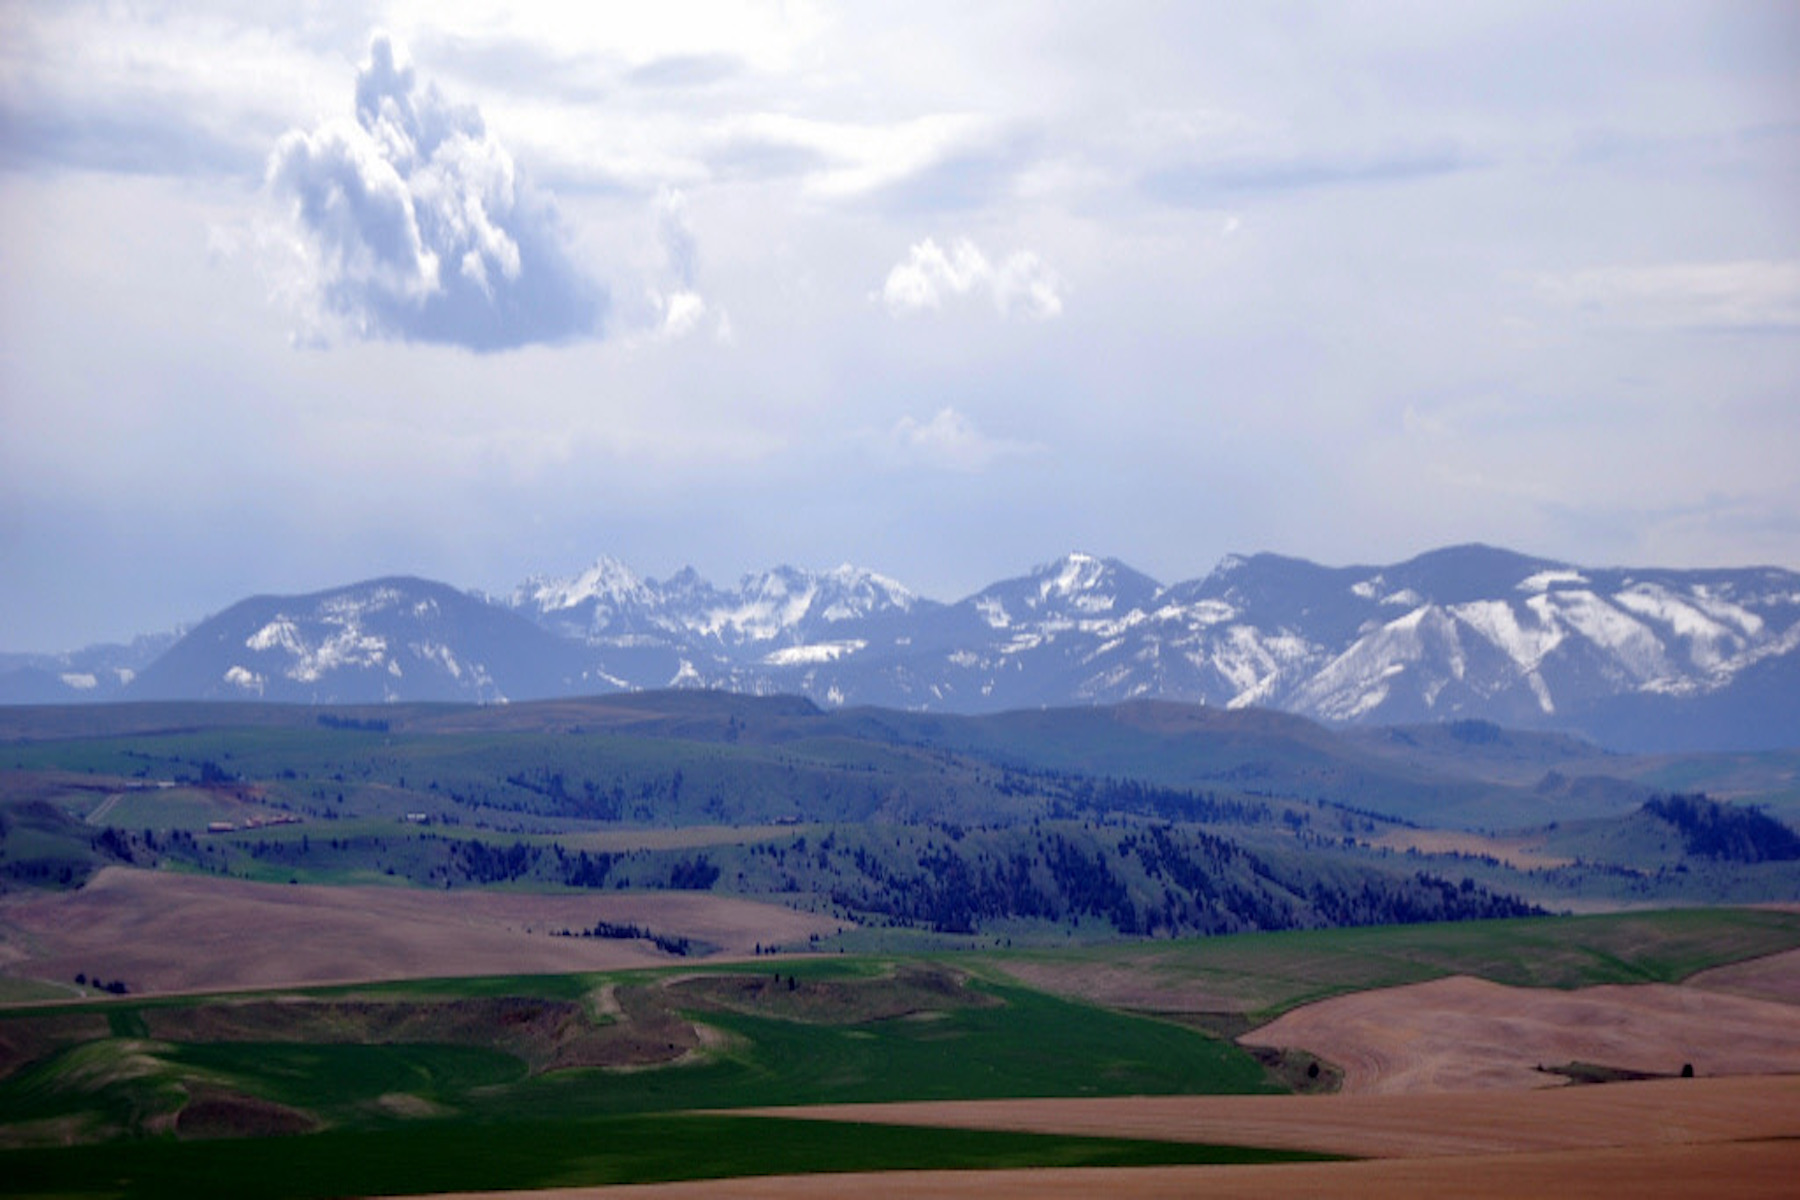 Land for Sale at 1, 2, 3, 4, & 5 Vincent Road 1, 2, 3, 4, & 5 Vincent Rd, COS 2241A Manhattan, Montana, 59741 United States